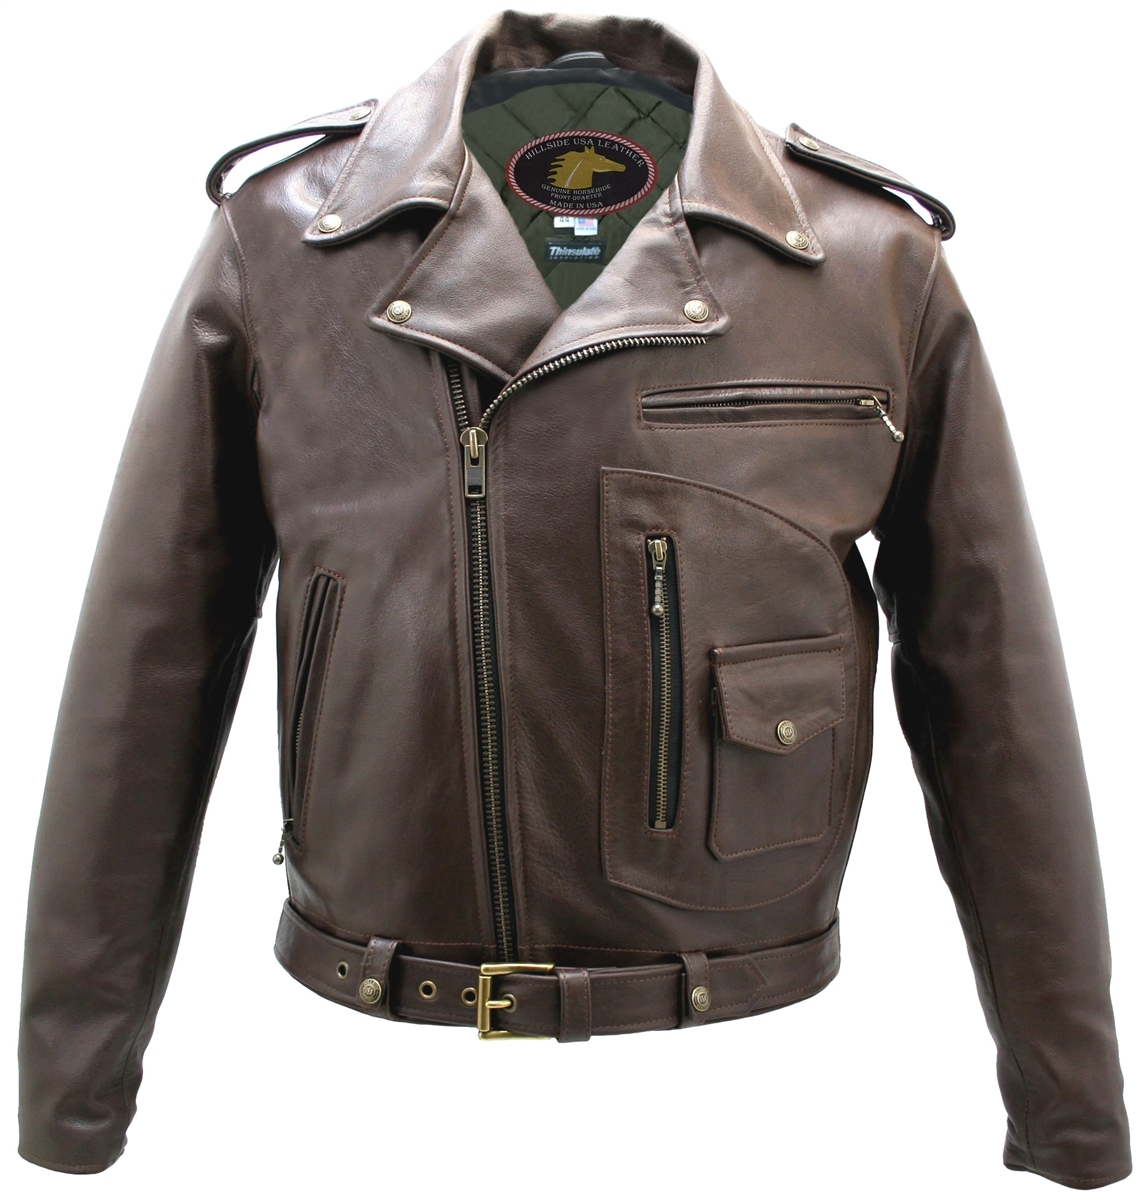 motorcycle leather usa jacket brown horsehide pocket jackets hillside gear american mens biker chaps custom vests hillsideusa accessories